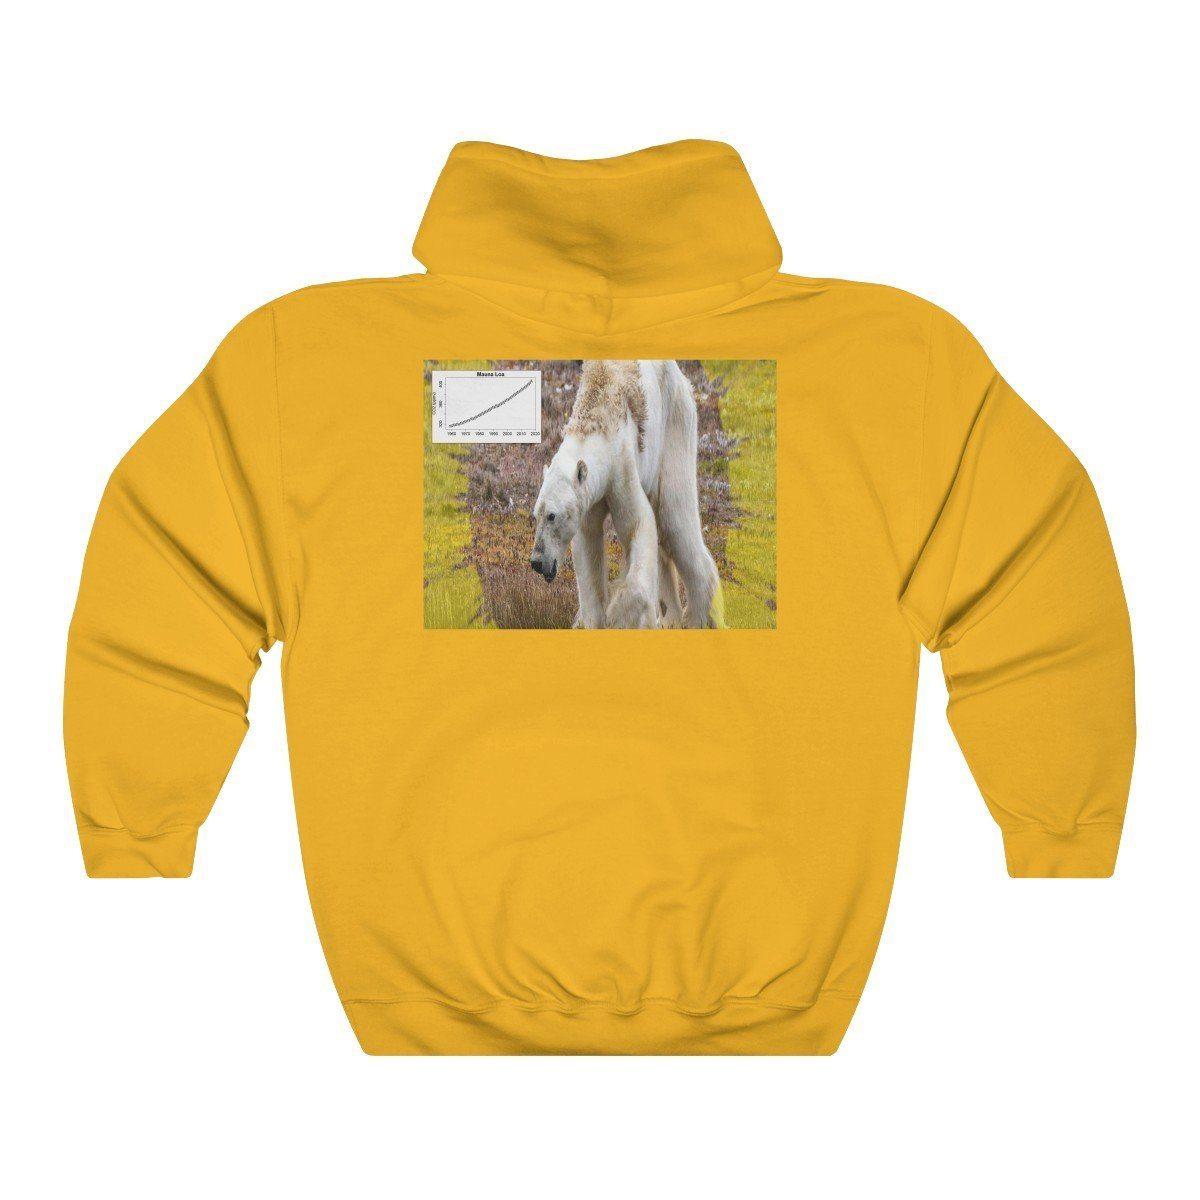 Unisex Heavy Blend™ Hooded Sweatshirt - Gildan 18500 - Greta in UN Climate conferences and starving bear due to early ice melt in back Hoodie Printify